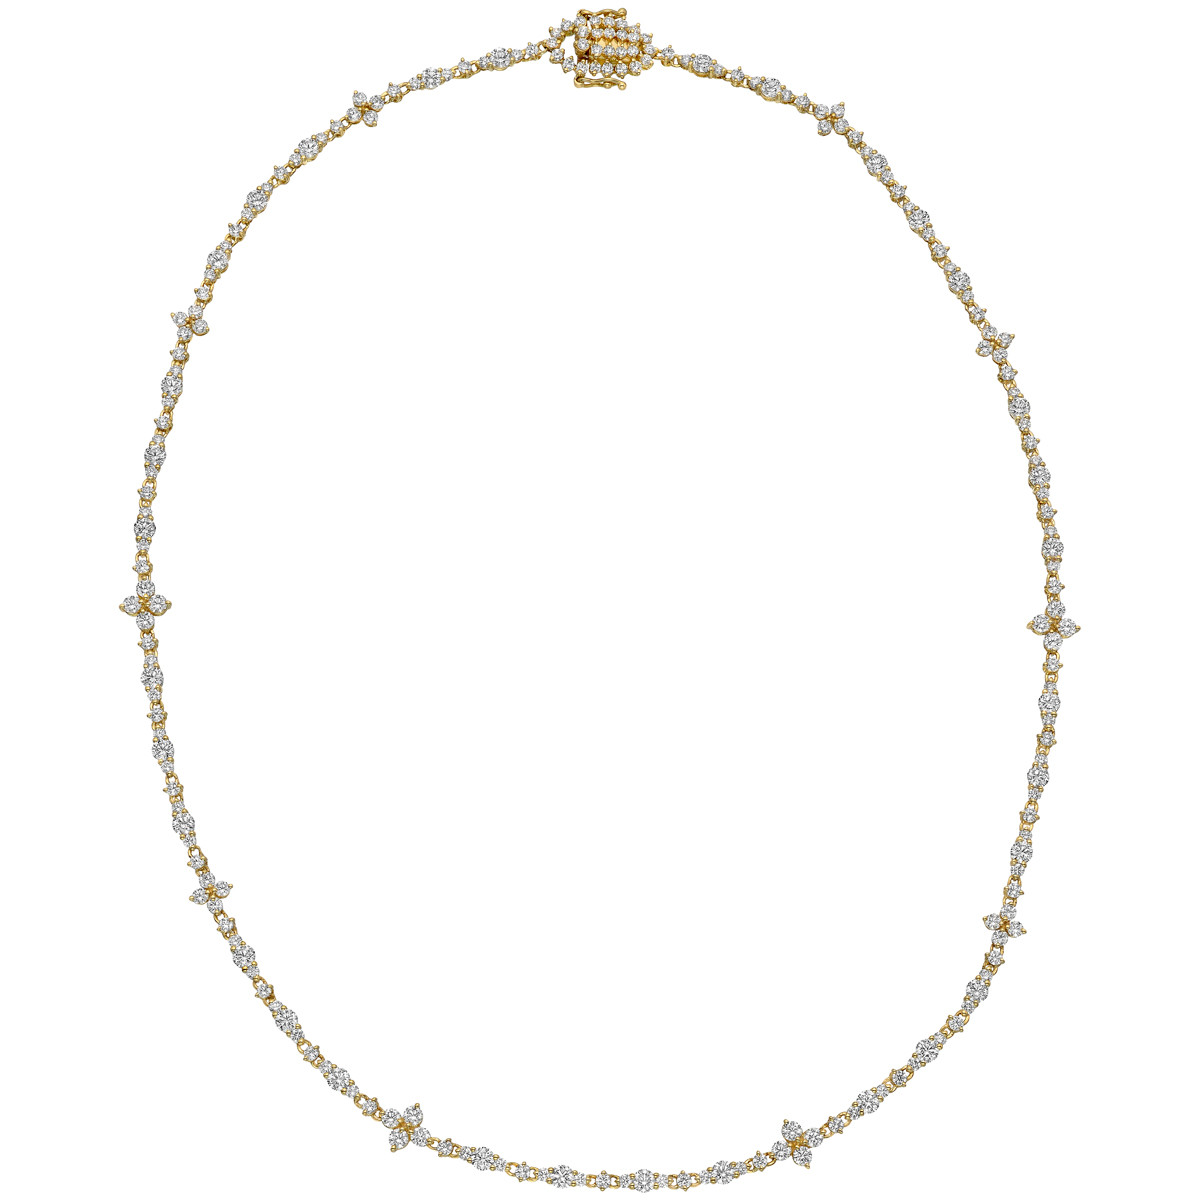 18k Yellow Gold & Diamond Line Necklace